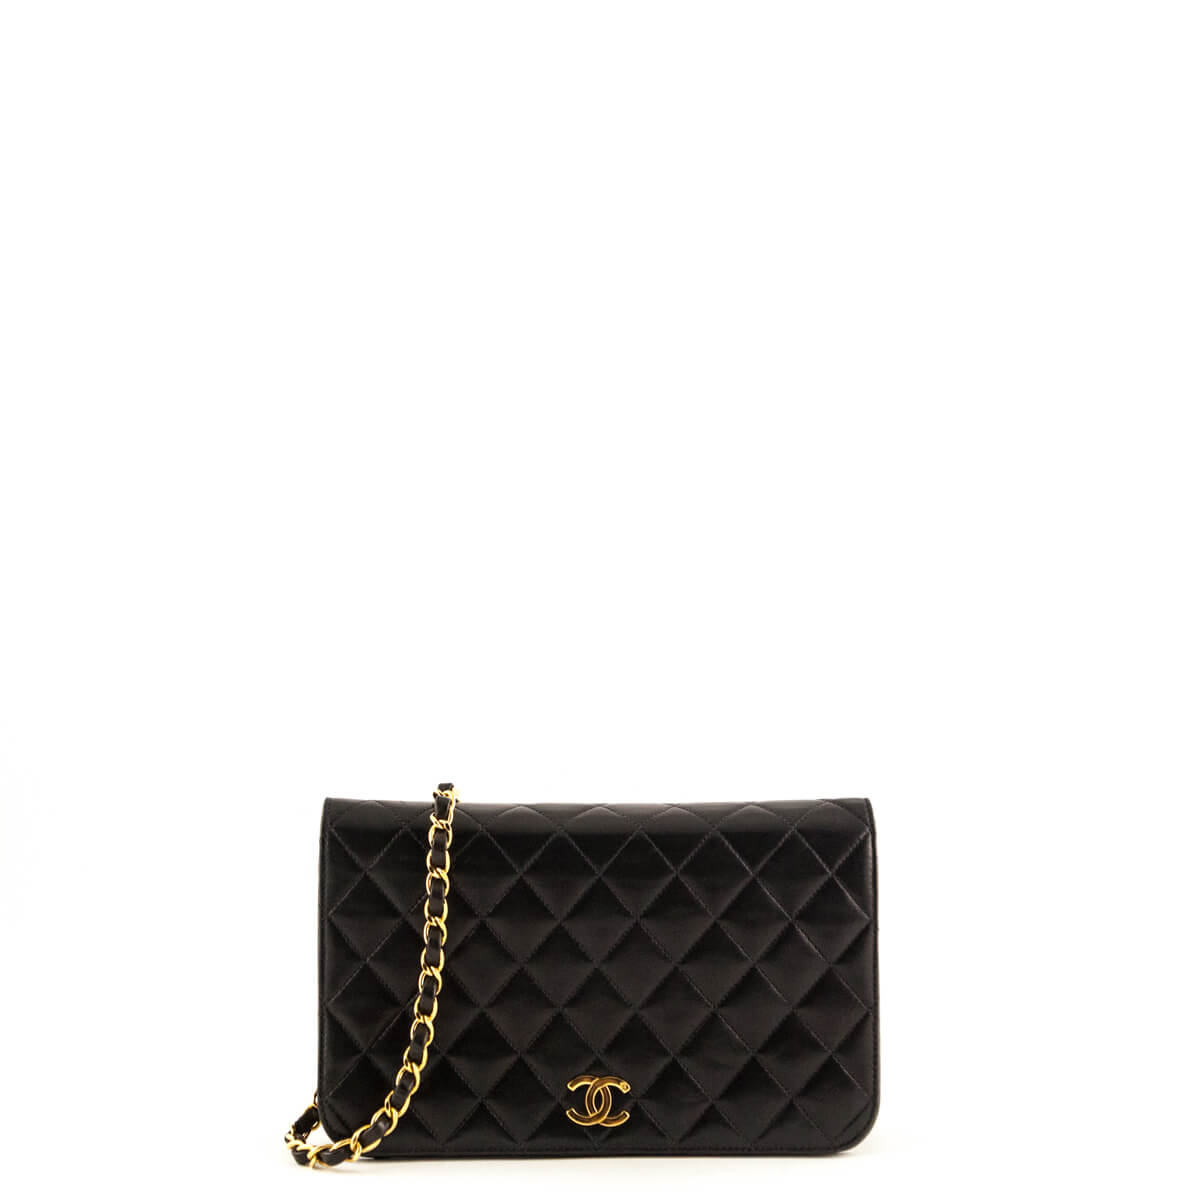 0ba1940af7b1 Chanel Black Lambskin Vintage Small Single Flap GHW - LOVE that BAG -  Preowned Authentic Designer ...